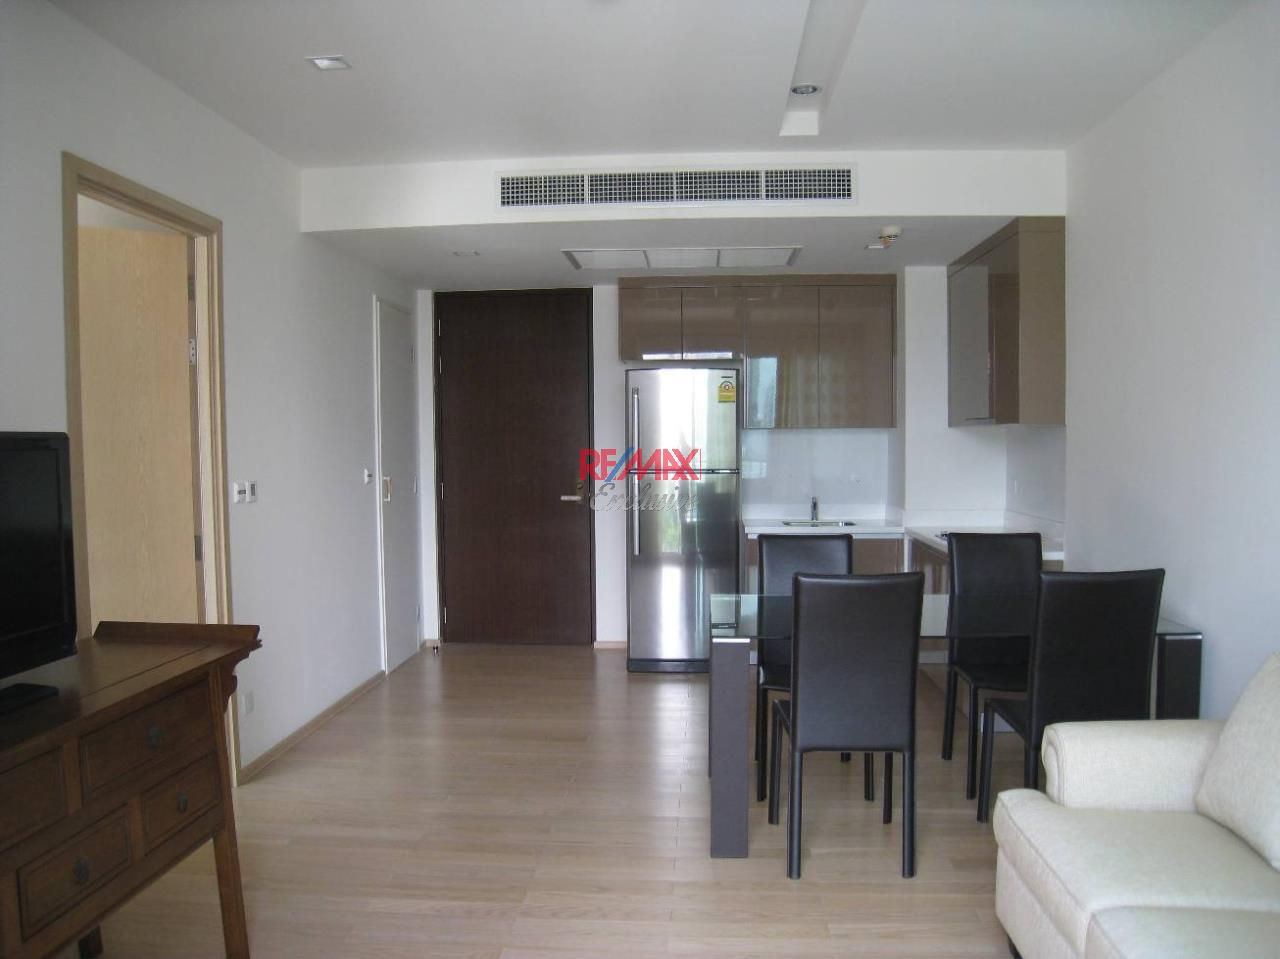 RE/MAX Exclusive Agency's Siri at Sukhumvit, 1 Bedroom 52 Sqm. for Sale 8